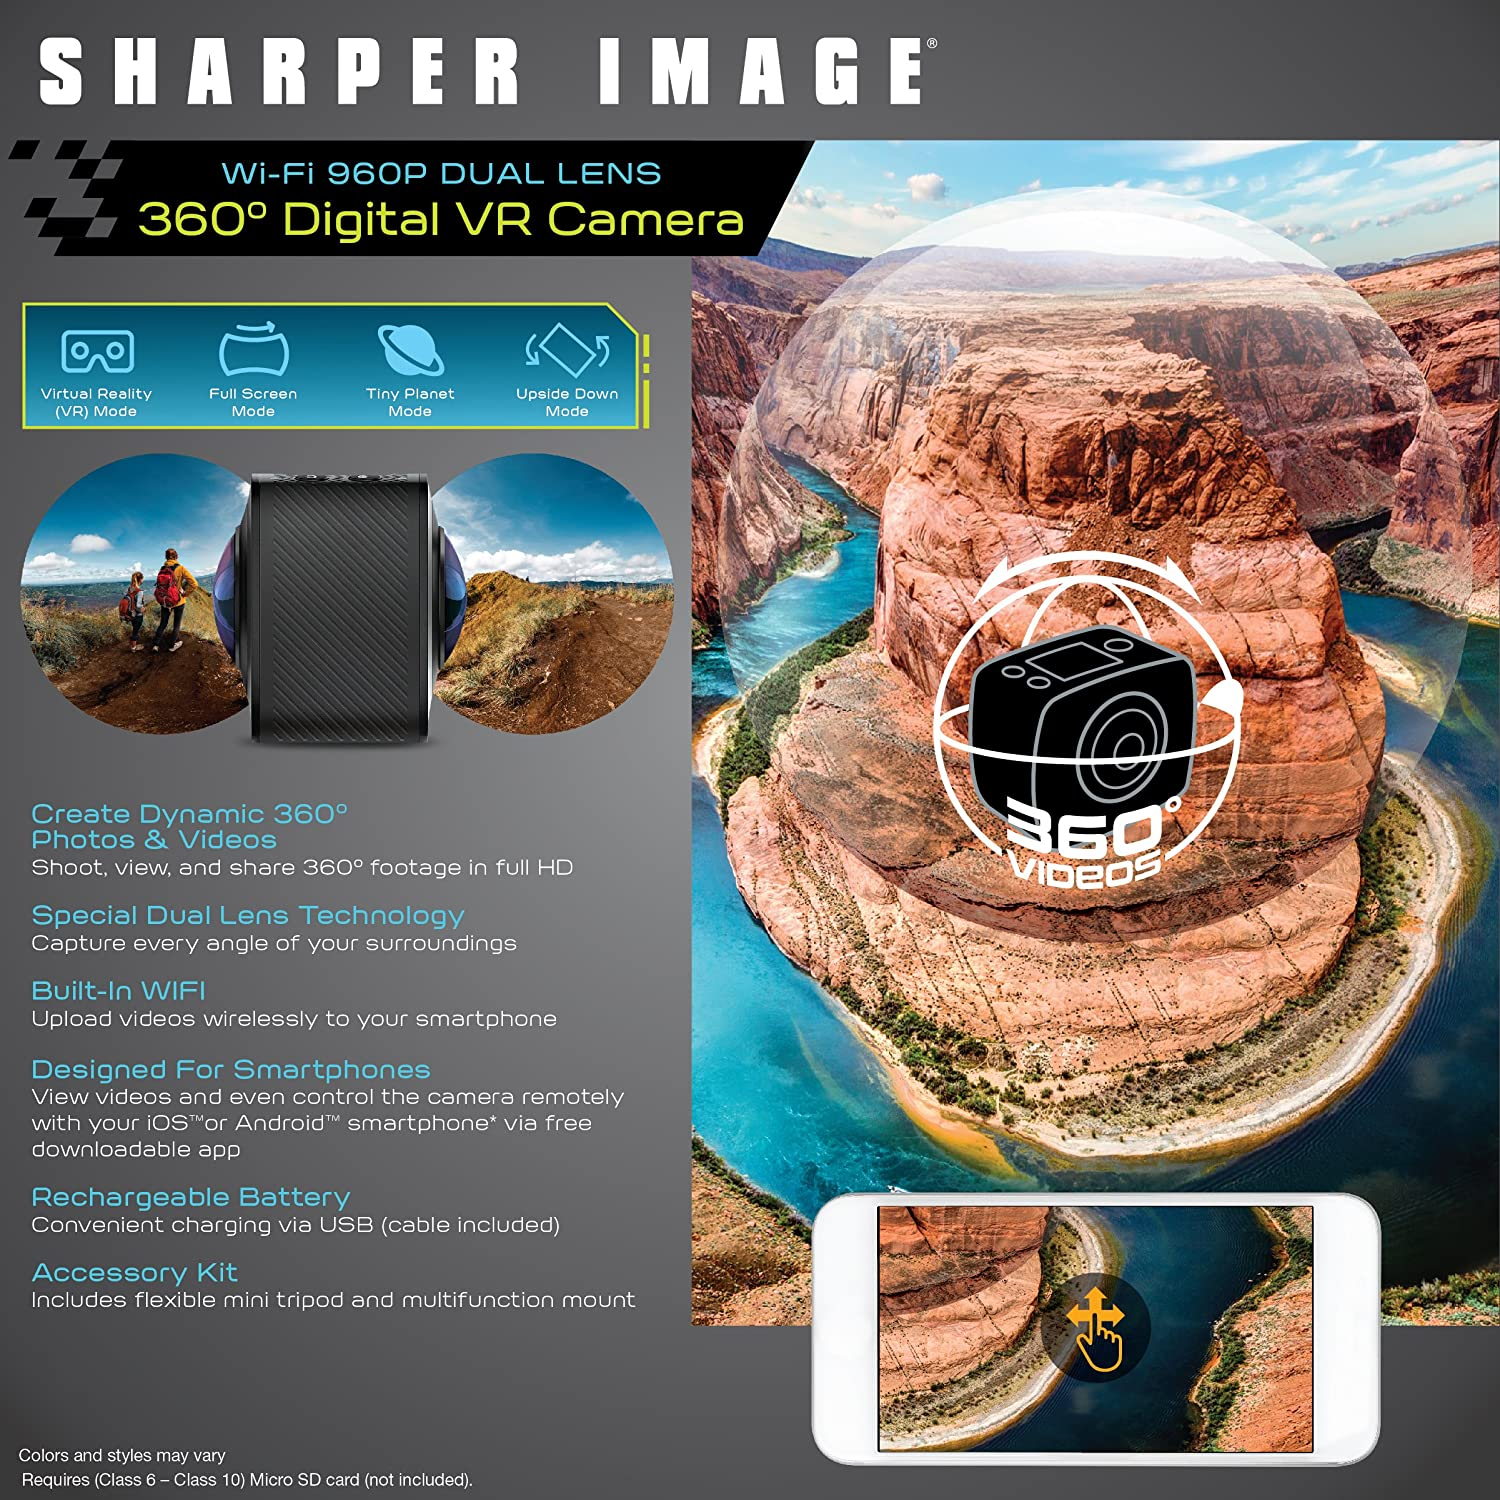 SHARPER IMAGE 360 Action Camera w/Wide Dual Lens, Record 960P Video &  Photos for VR Virtual Reality, Handheld Mini Tripod and Car Dash Cam Mount,